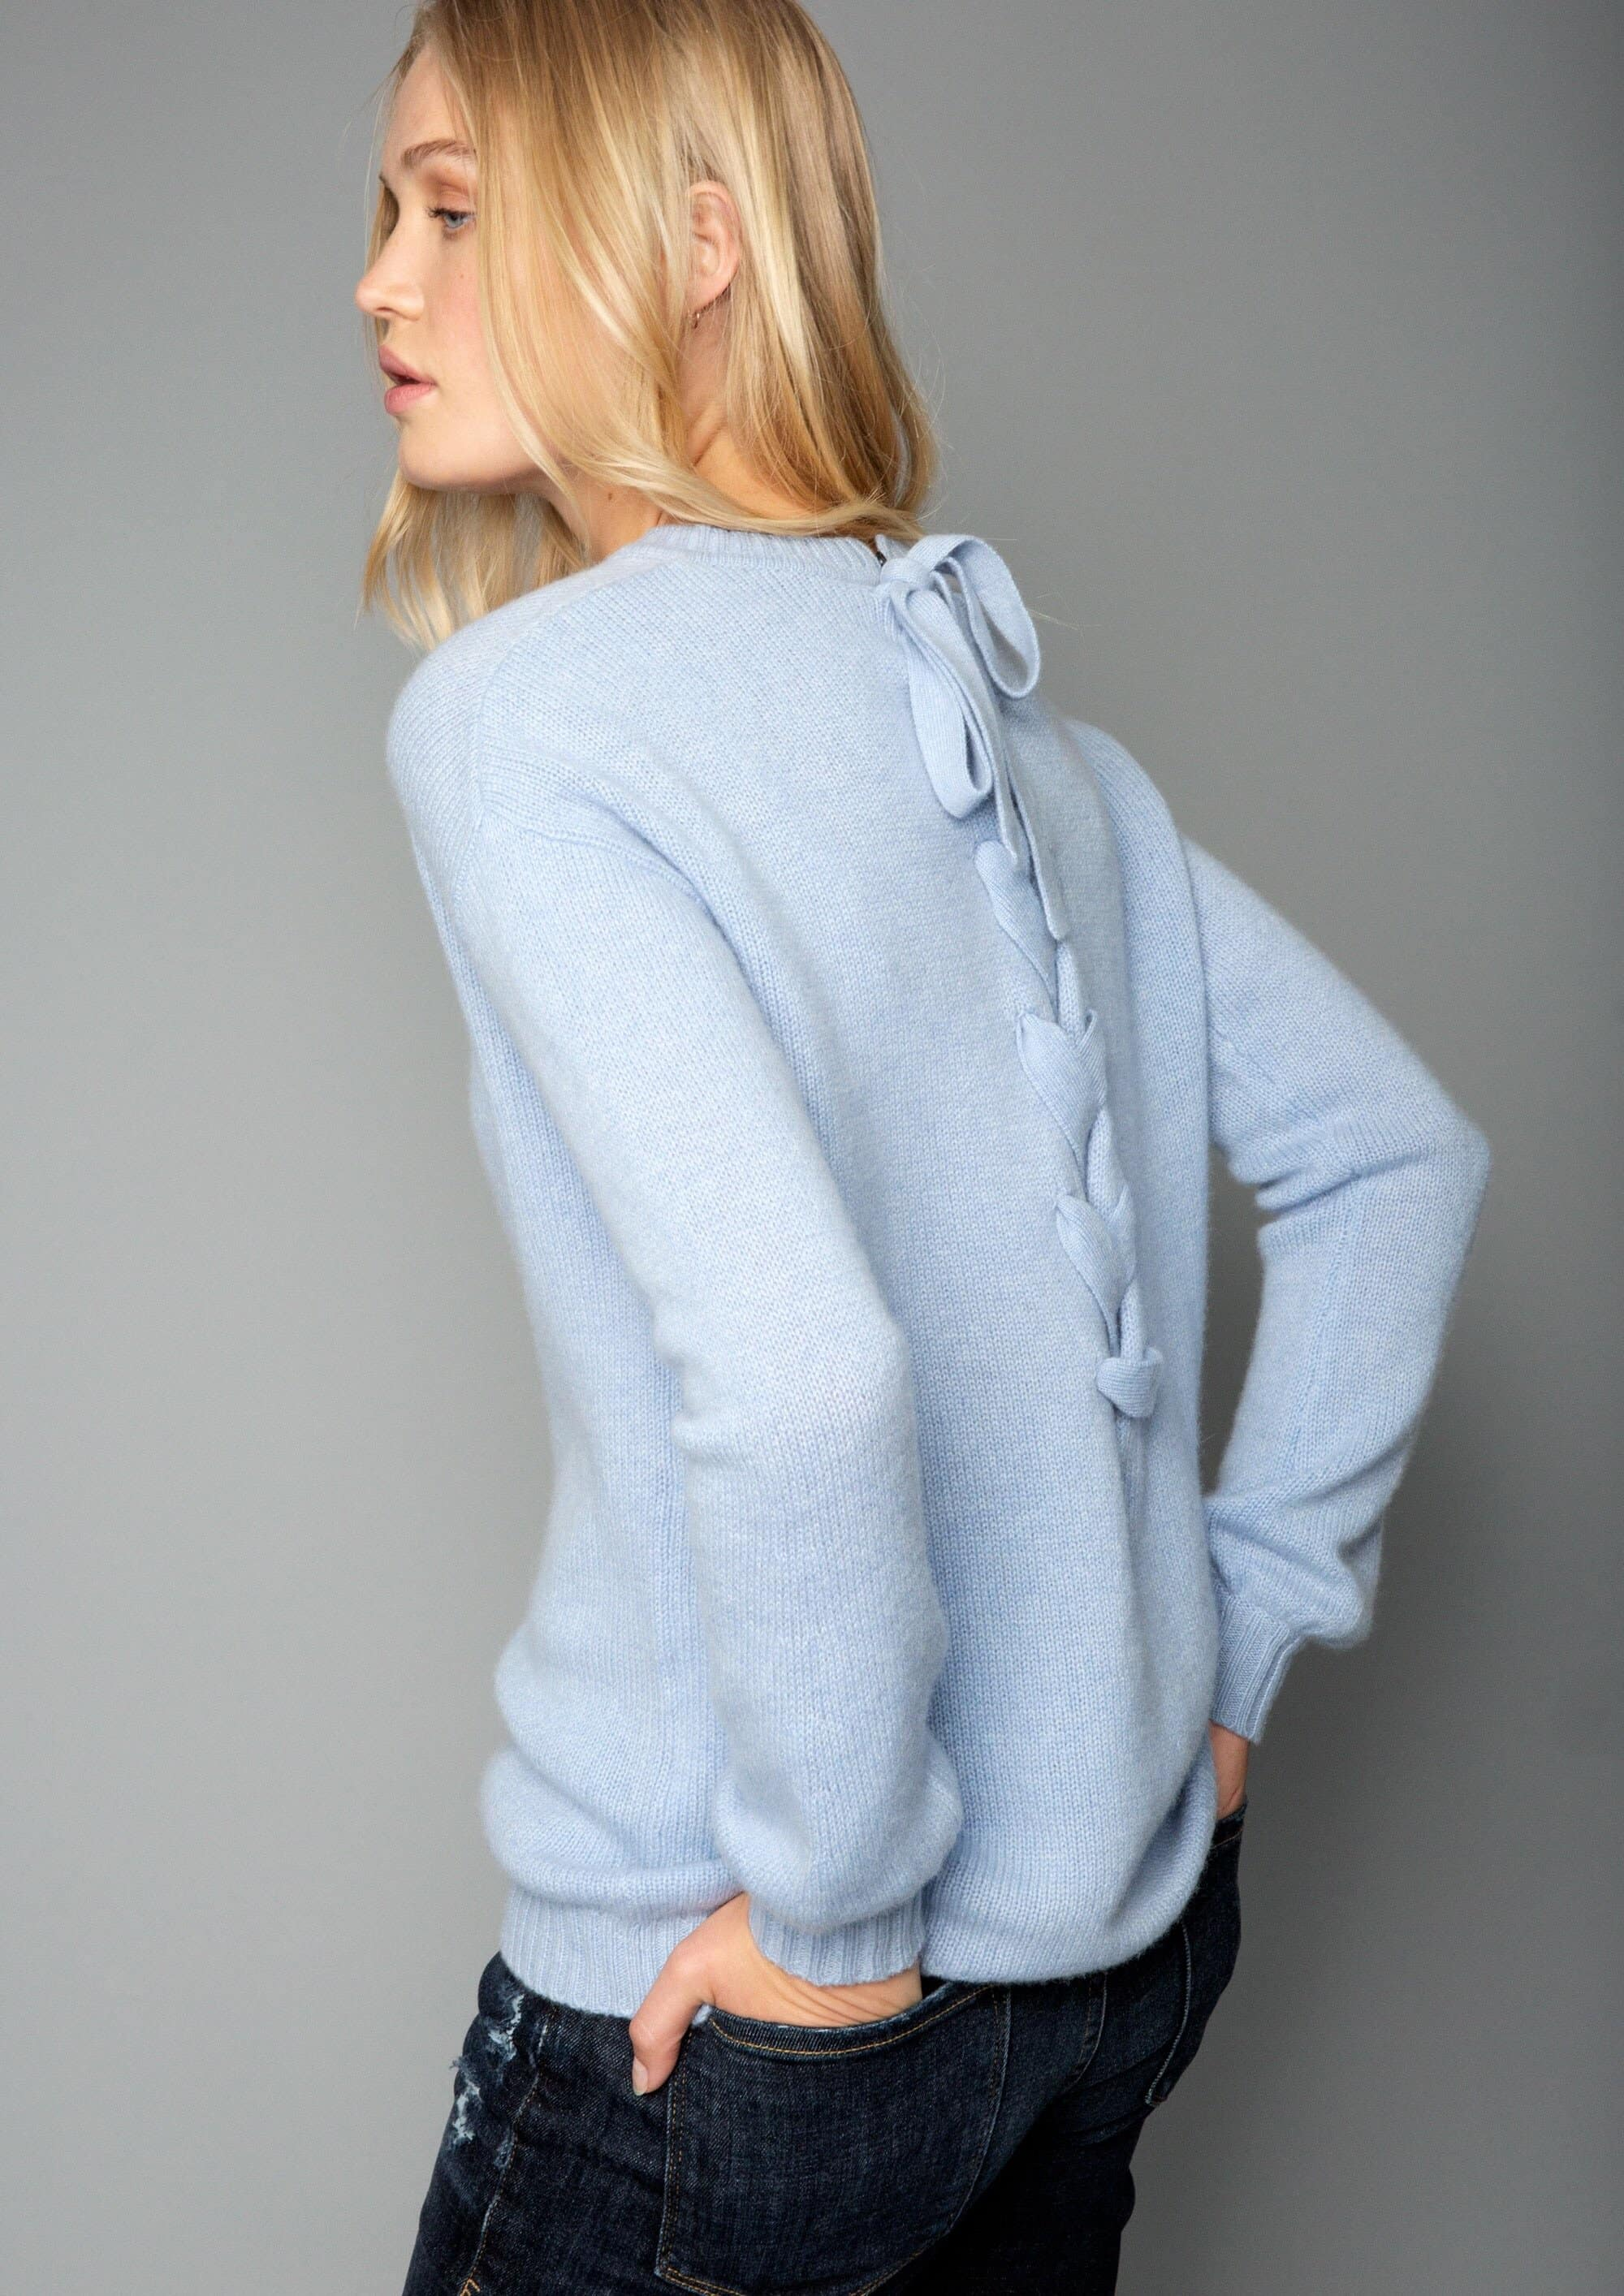 woman in a blue knitwear jumper